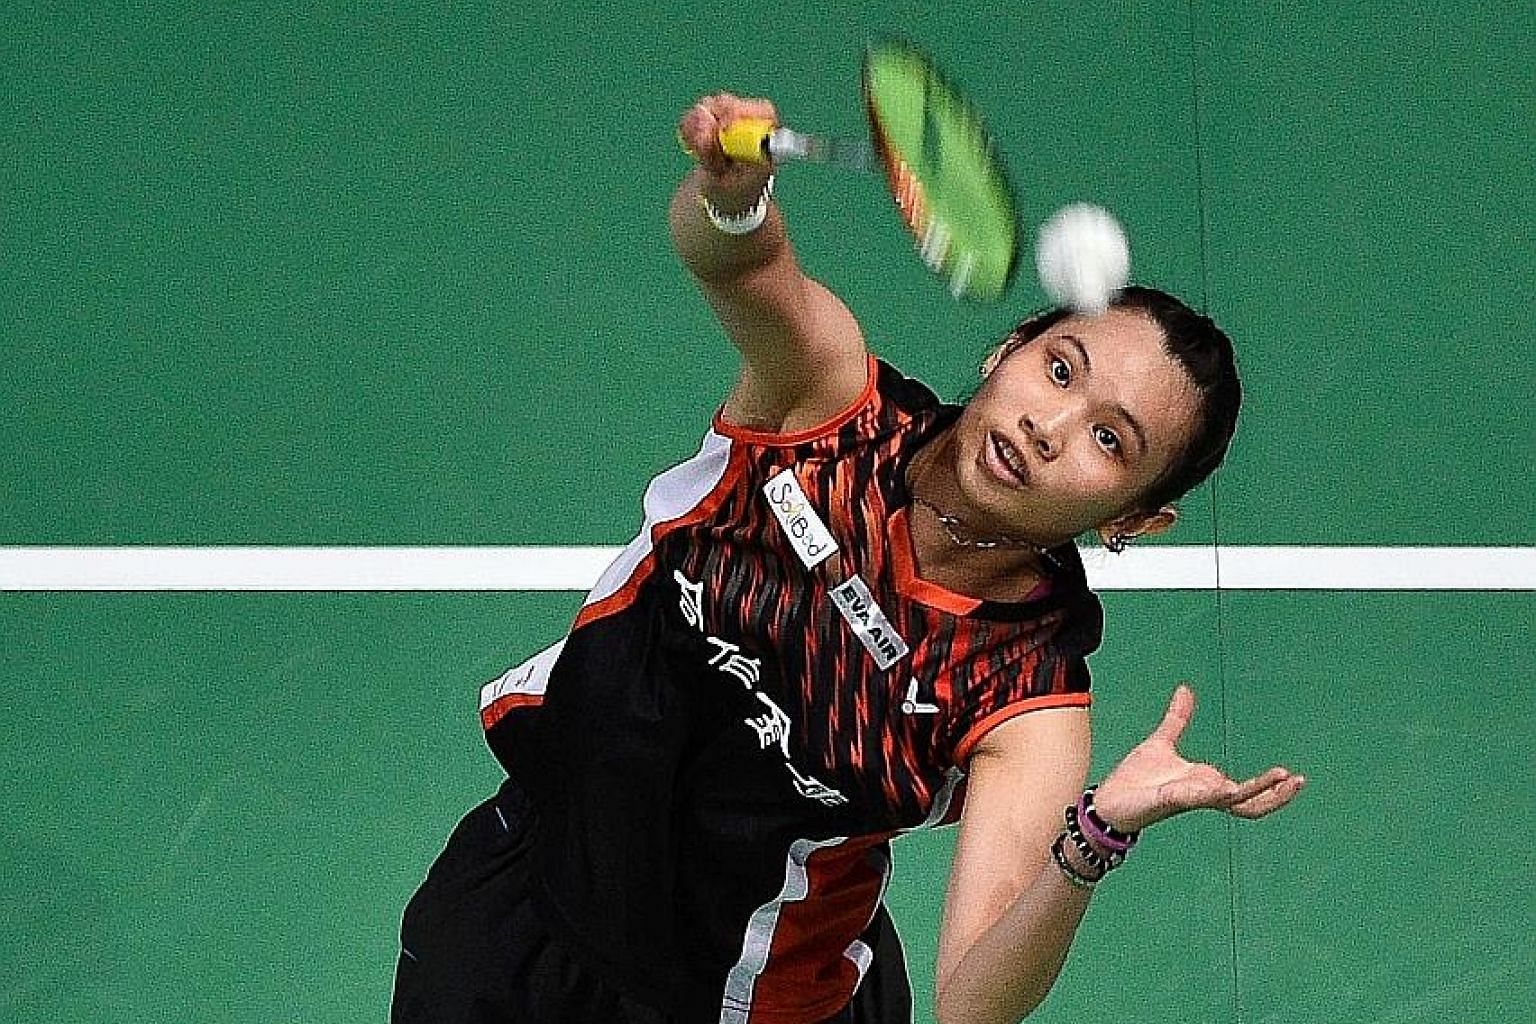 "Chinese Taipei's Tai Tzu-ying in action at the Dubai World Superseries Finals. She won her first tournament as world No. 1 in last December's season finale and has insisted that she ""doesn't feel much different"" since ascending to the top ranking."